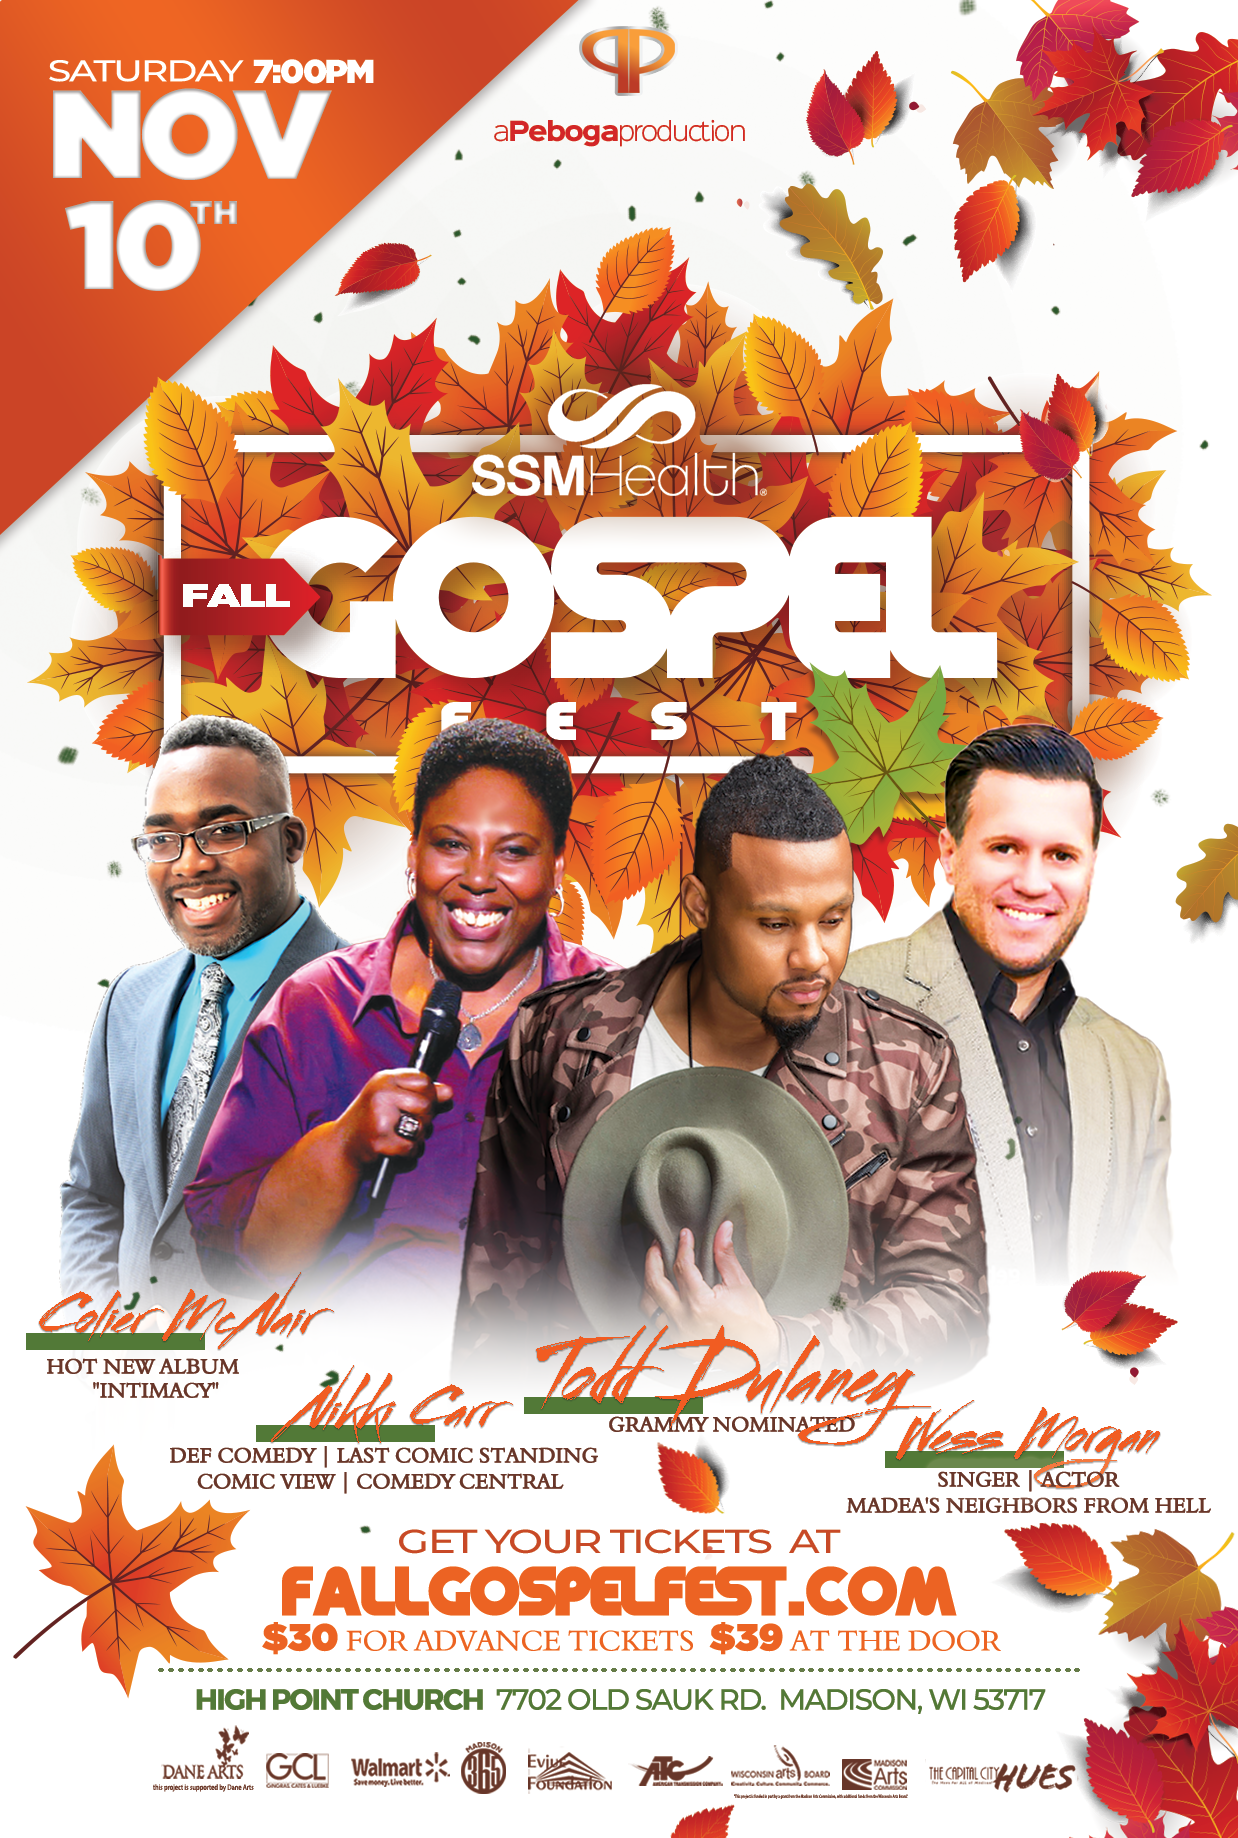 SSM Health Fall Gospel Fest